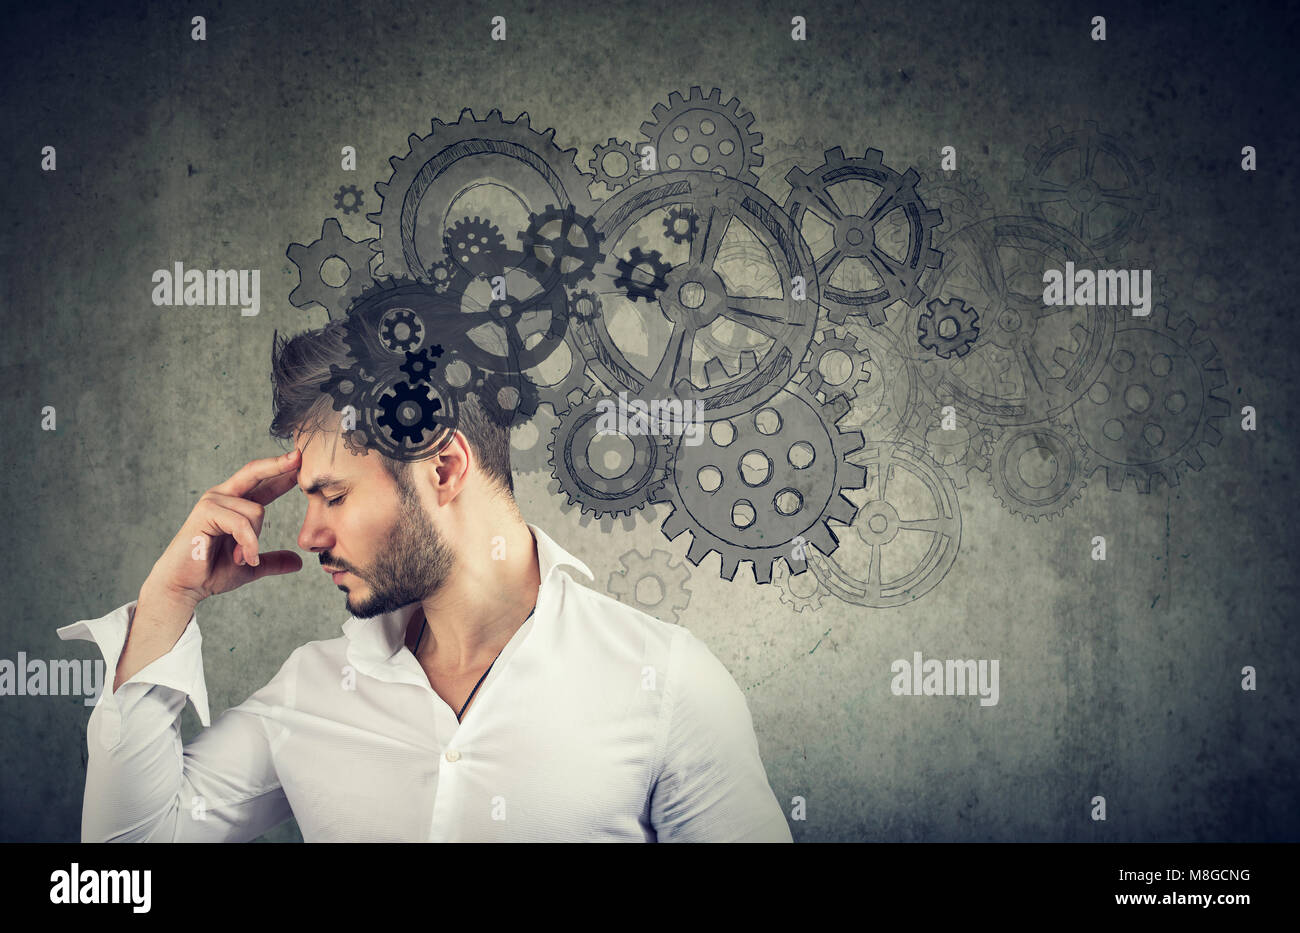 Serious young man thinking very hard solving a problem - Stock Image